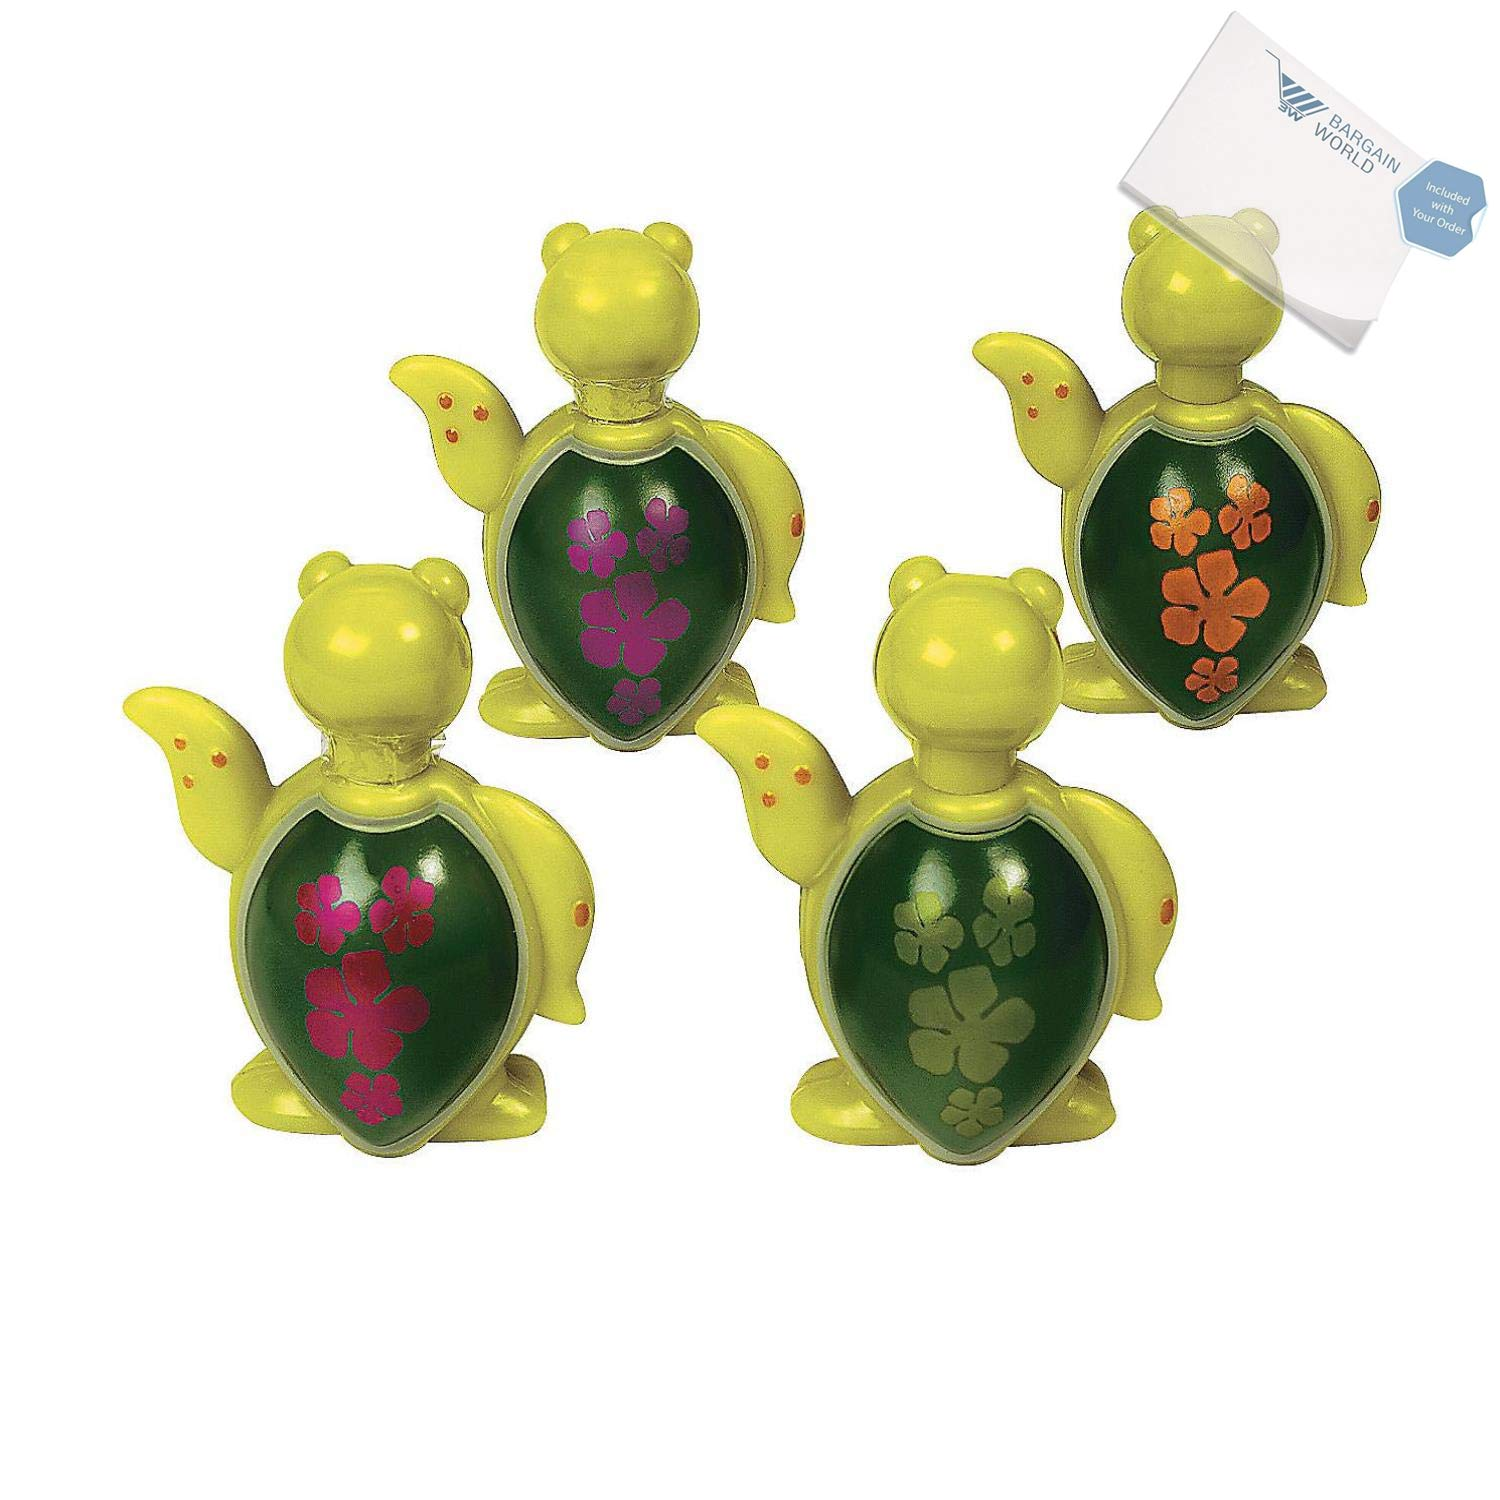 Bargain World Plastic Sea Turtle Bubble Bottles (With Sticky Notes) by Bargain World (Image #2)